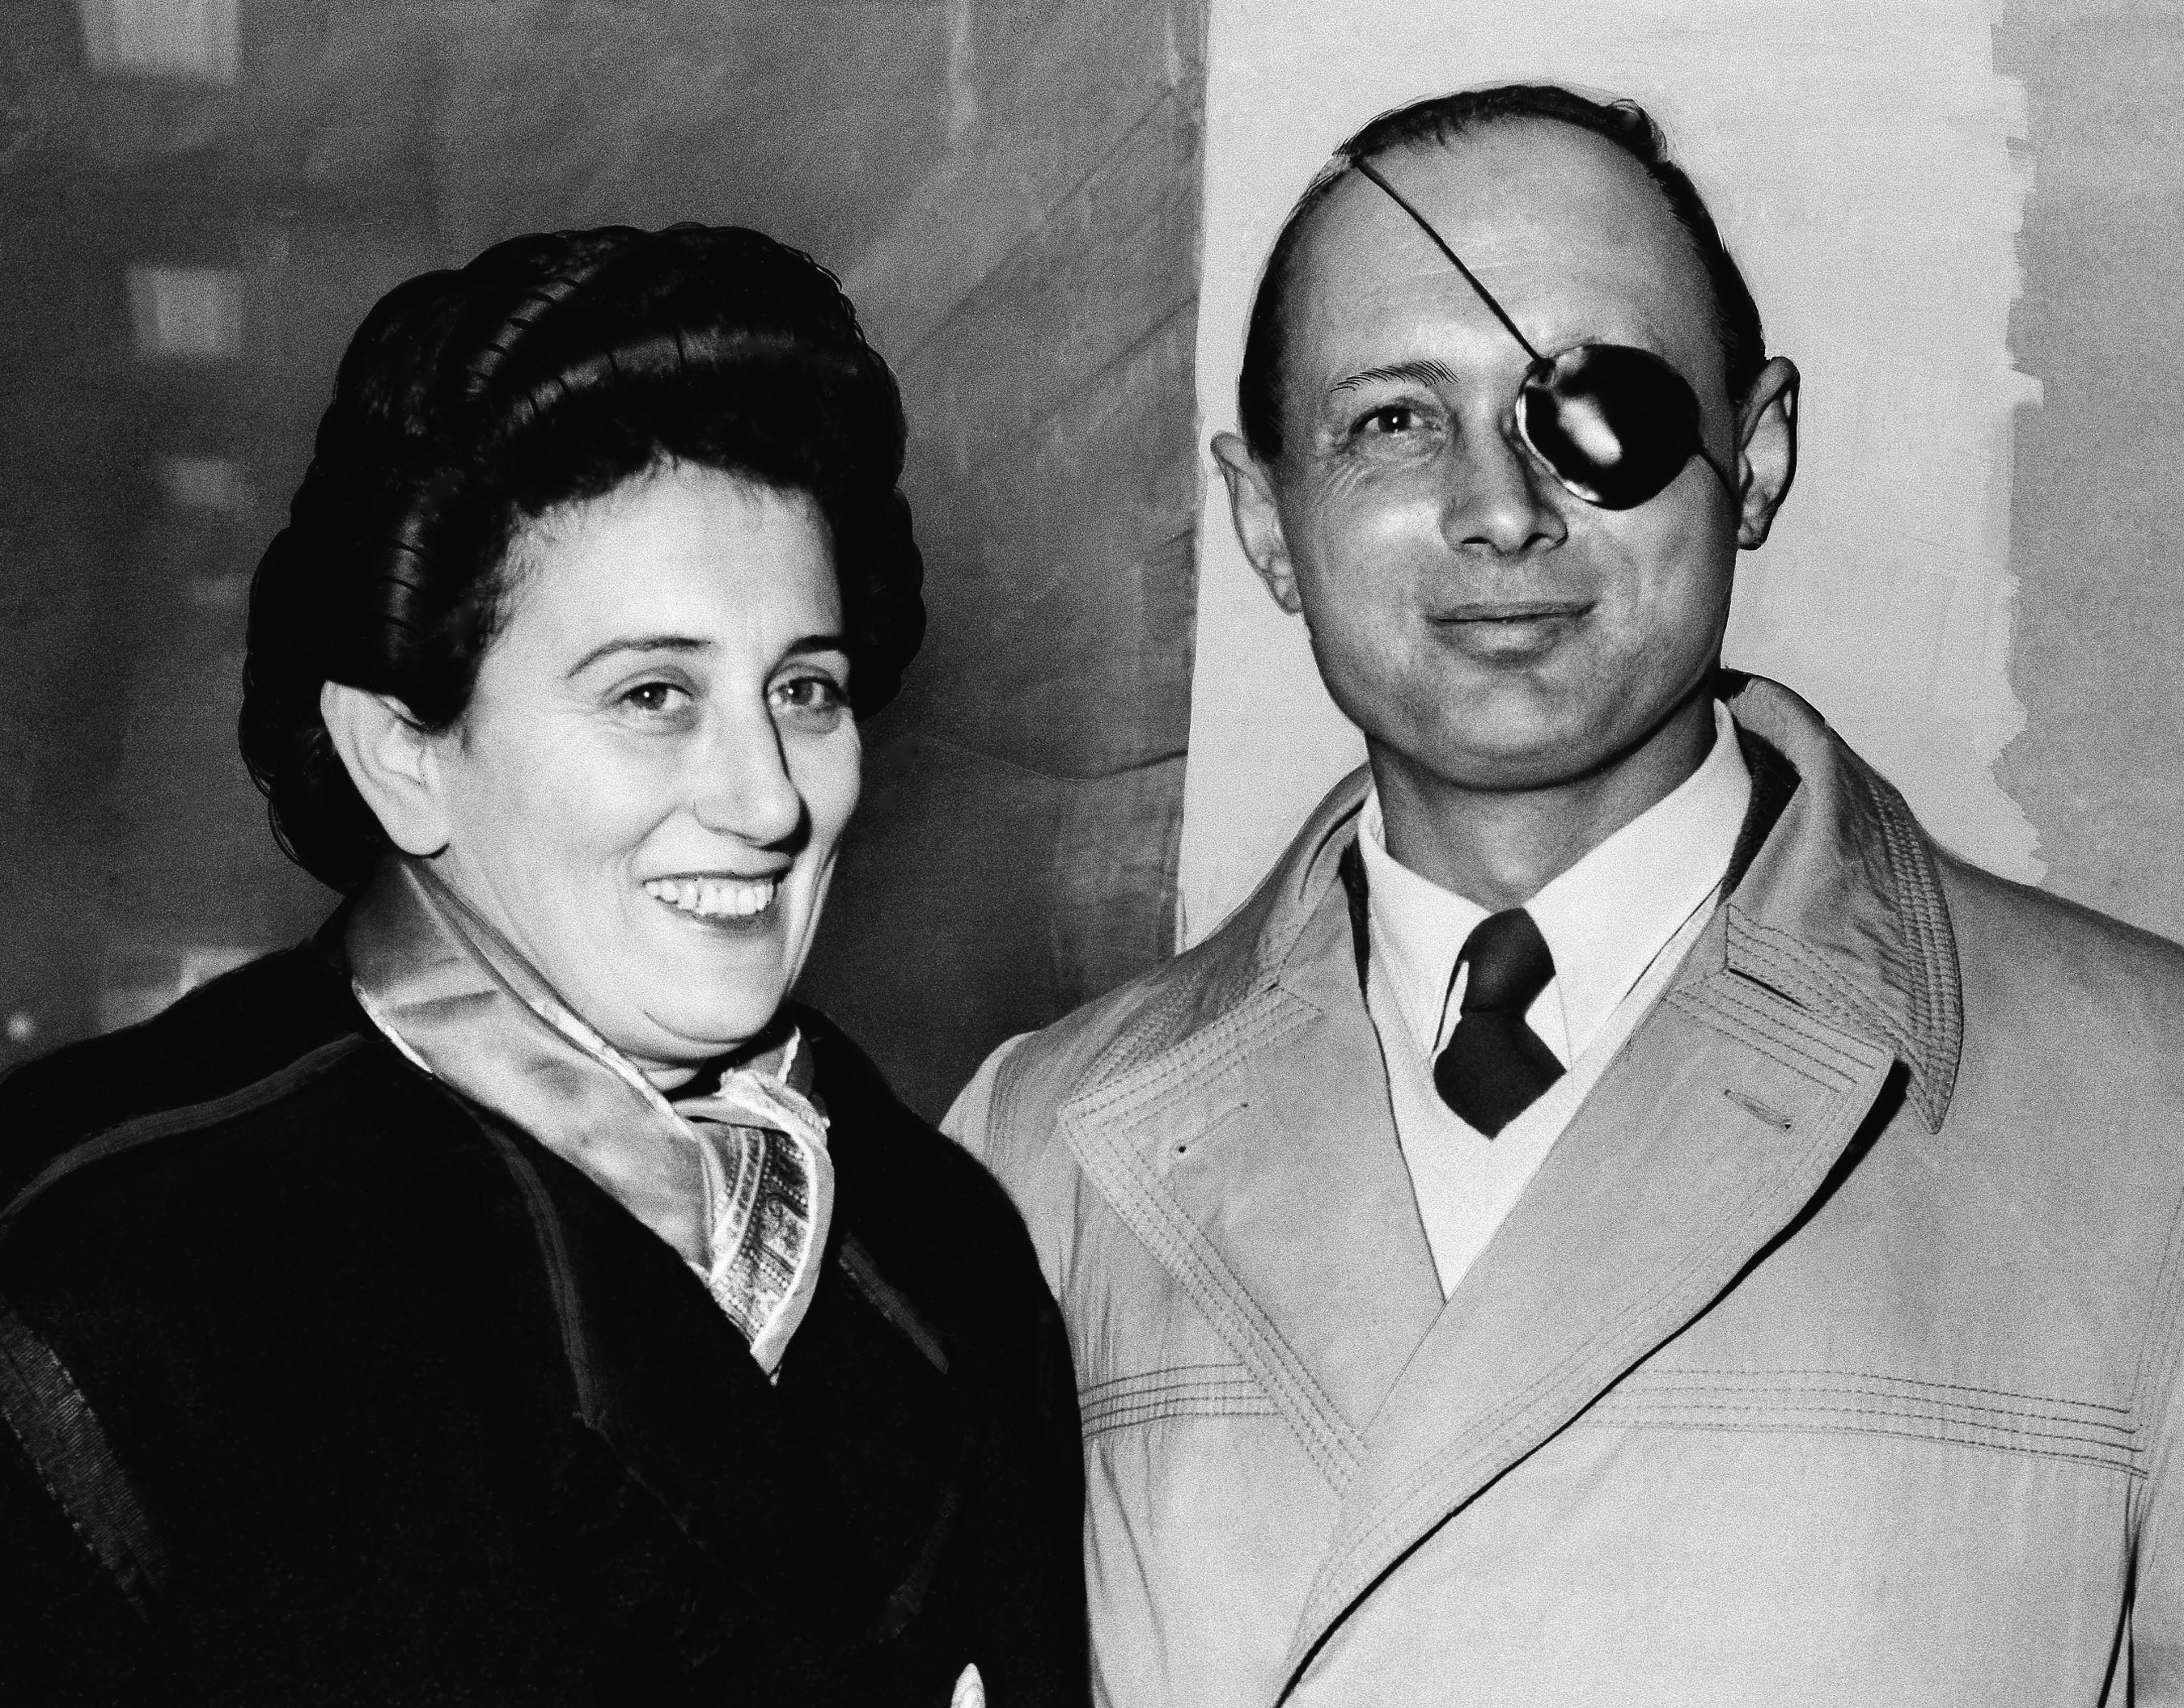 FILE - In this Jan. 13, 1958 file photo, Ruth Dayan stands with her husband, General Moshe Dayan, chief of staff of the Israeli Army, at London Airport.  Ruth Dayan, the Israeli fashion designer and peace activist has died at the age of 103, Israeli media reported Friday, Feb. 5, 2021. (AP Photo, File)